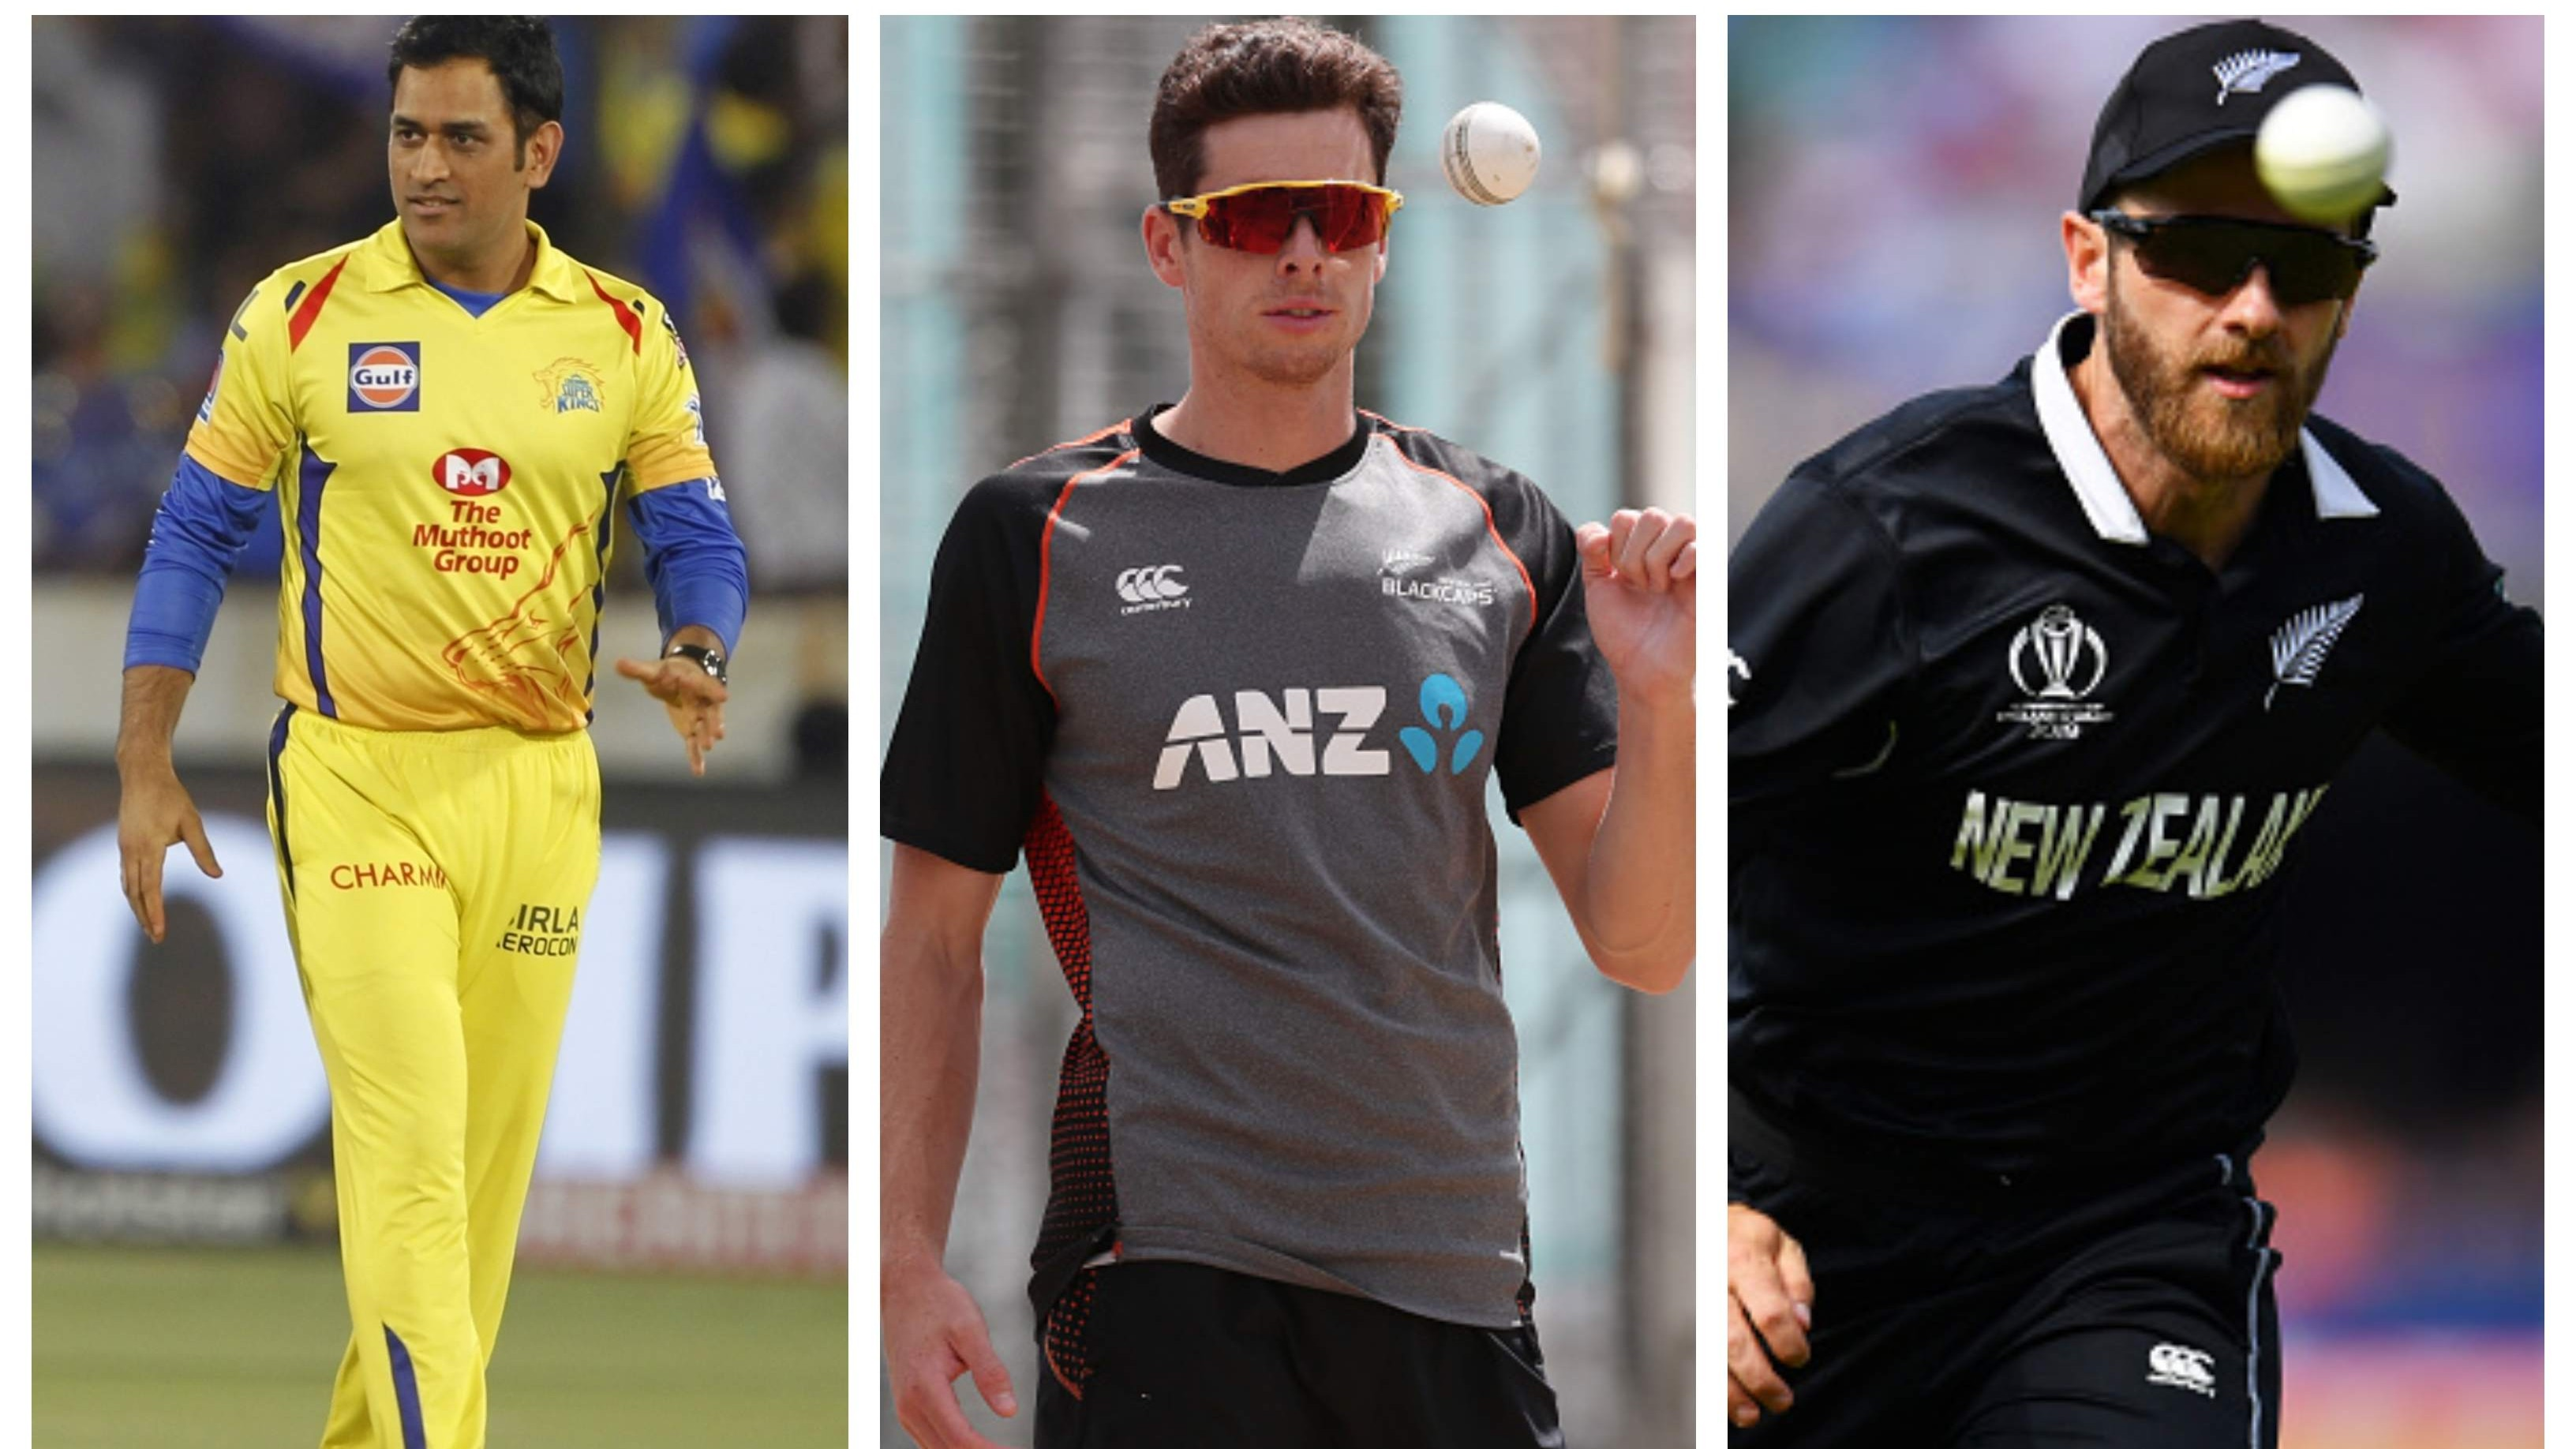 Mitchell Santner highlights similarities between MS Dhoni and Kane Williamson as captains